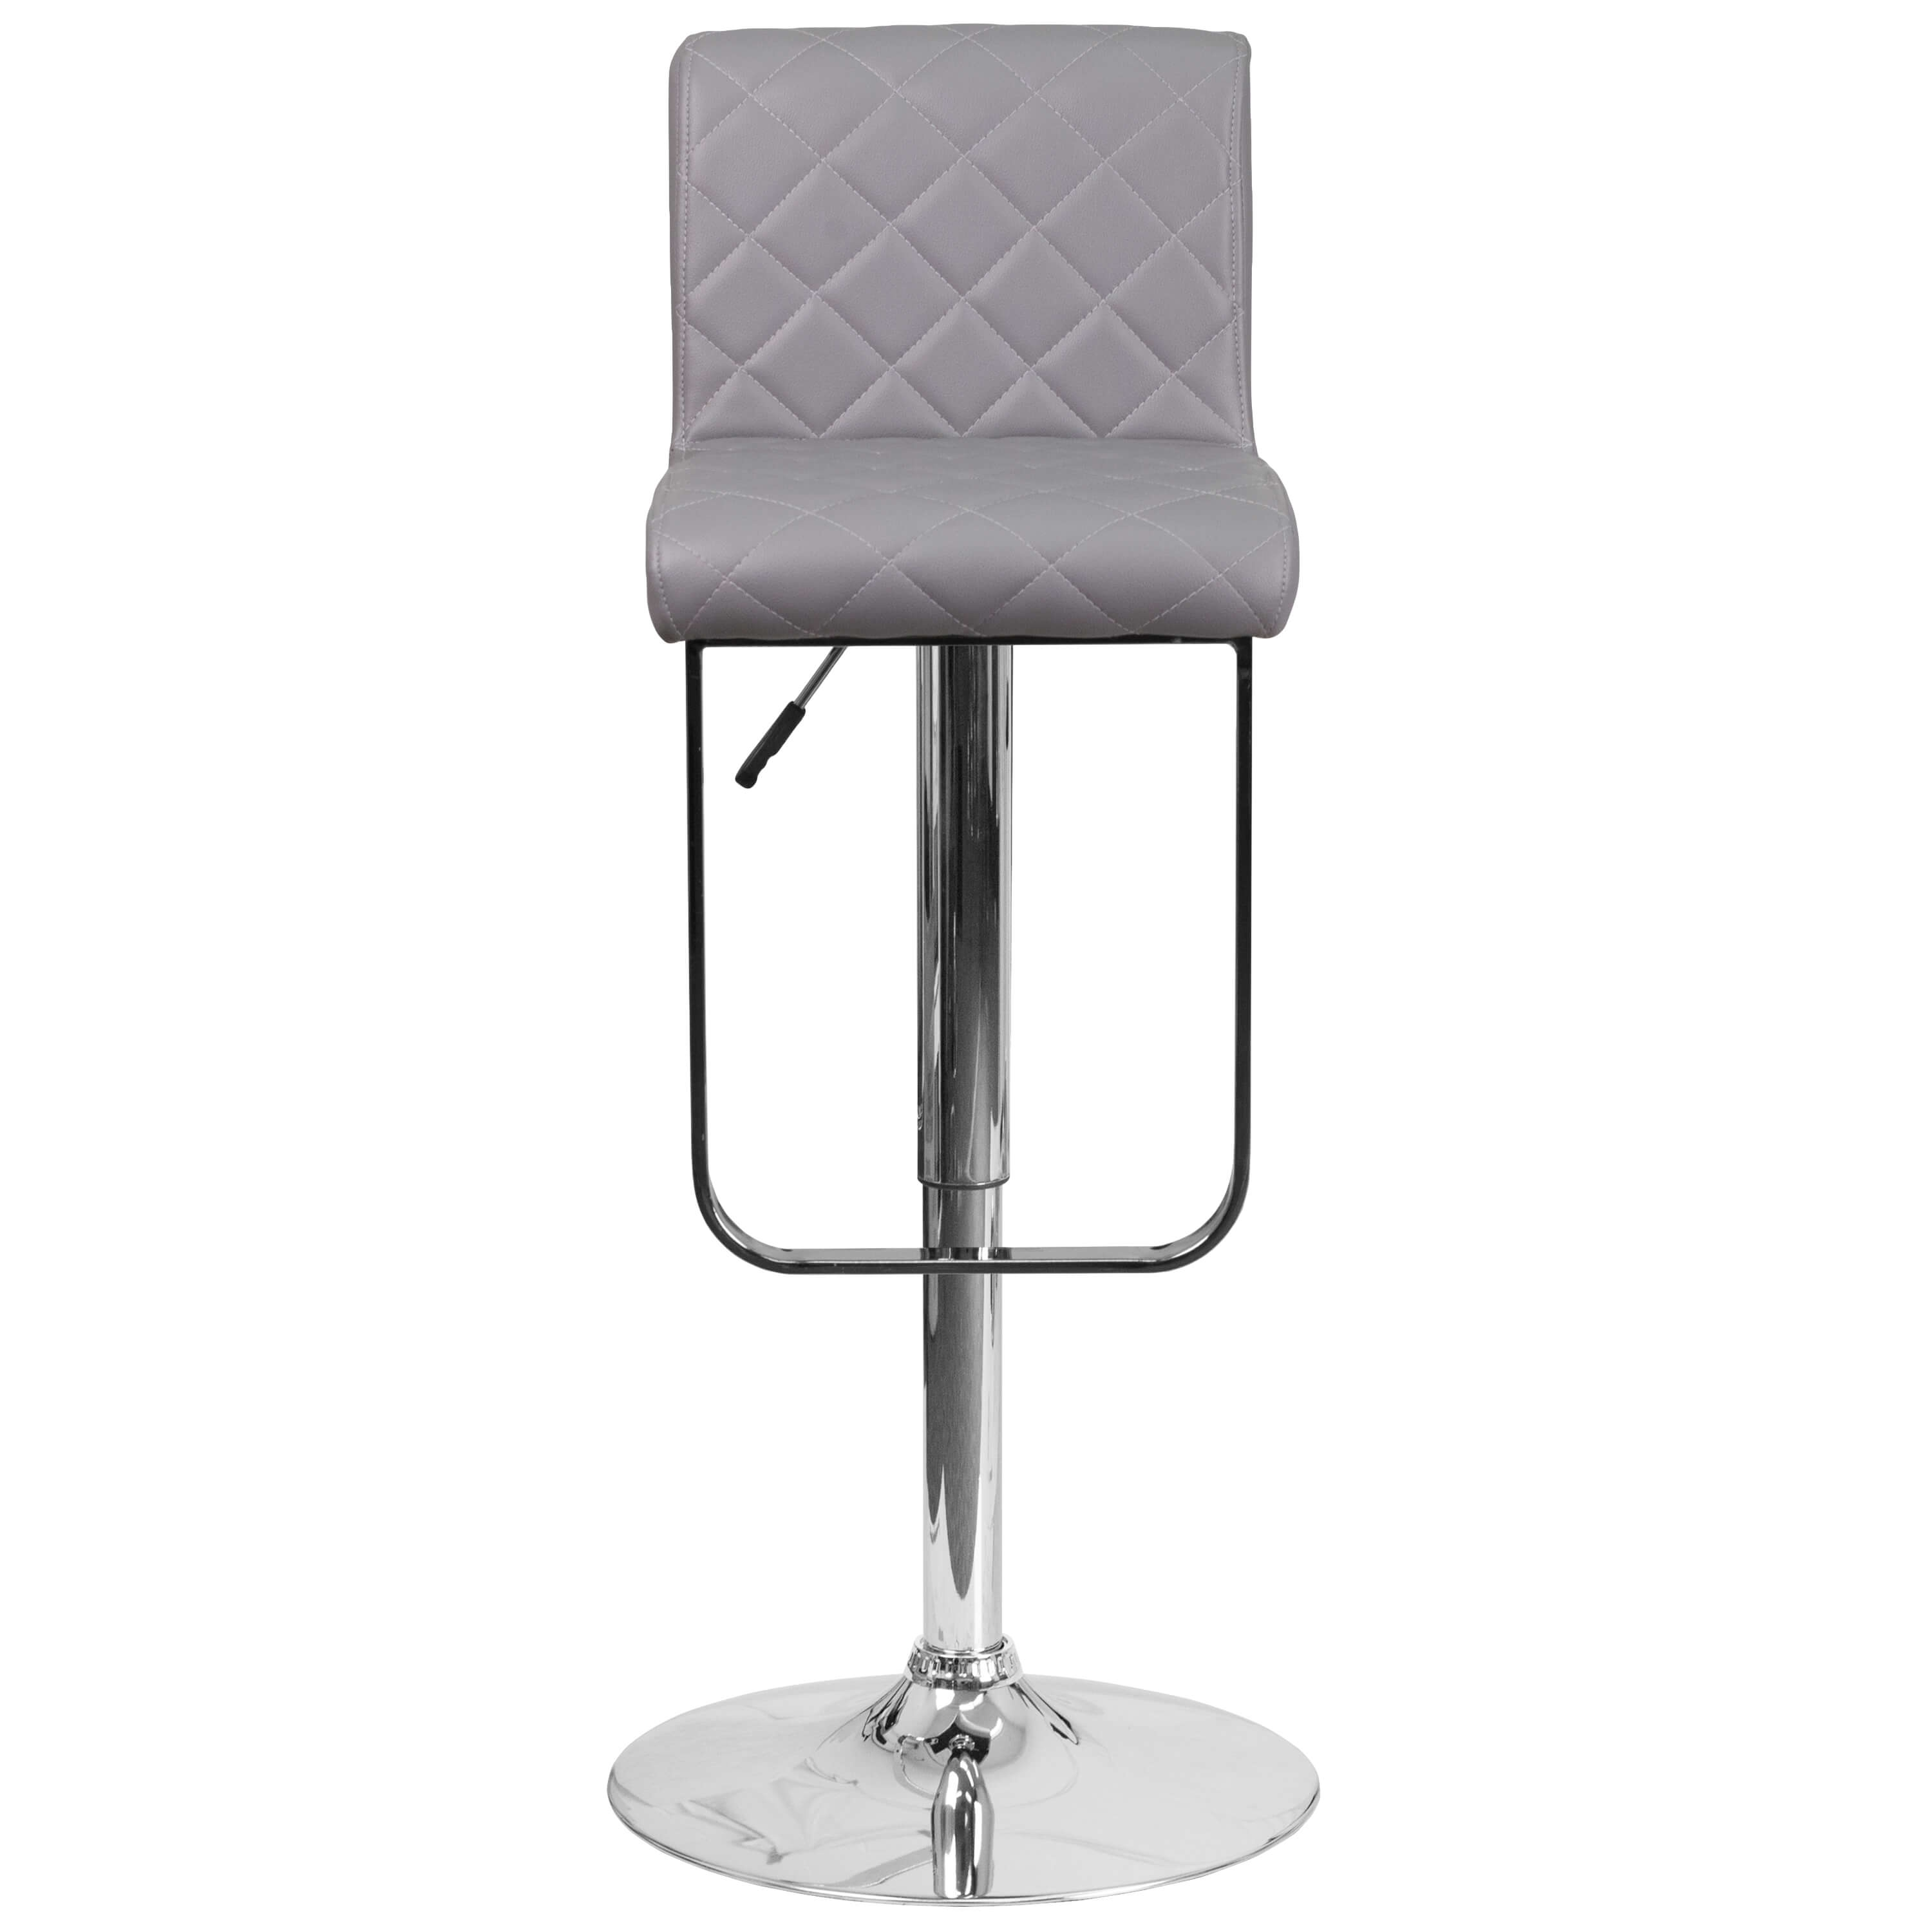 High bar stools front view